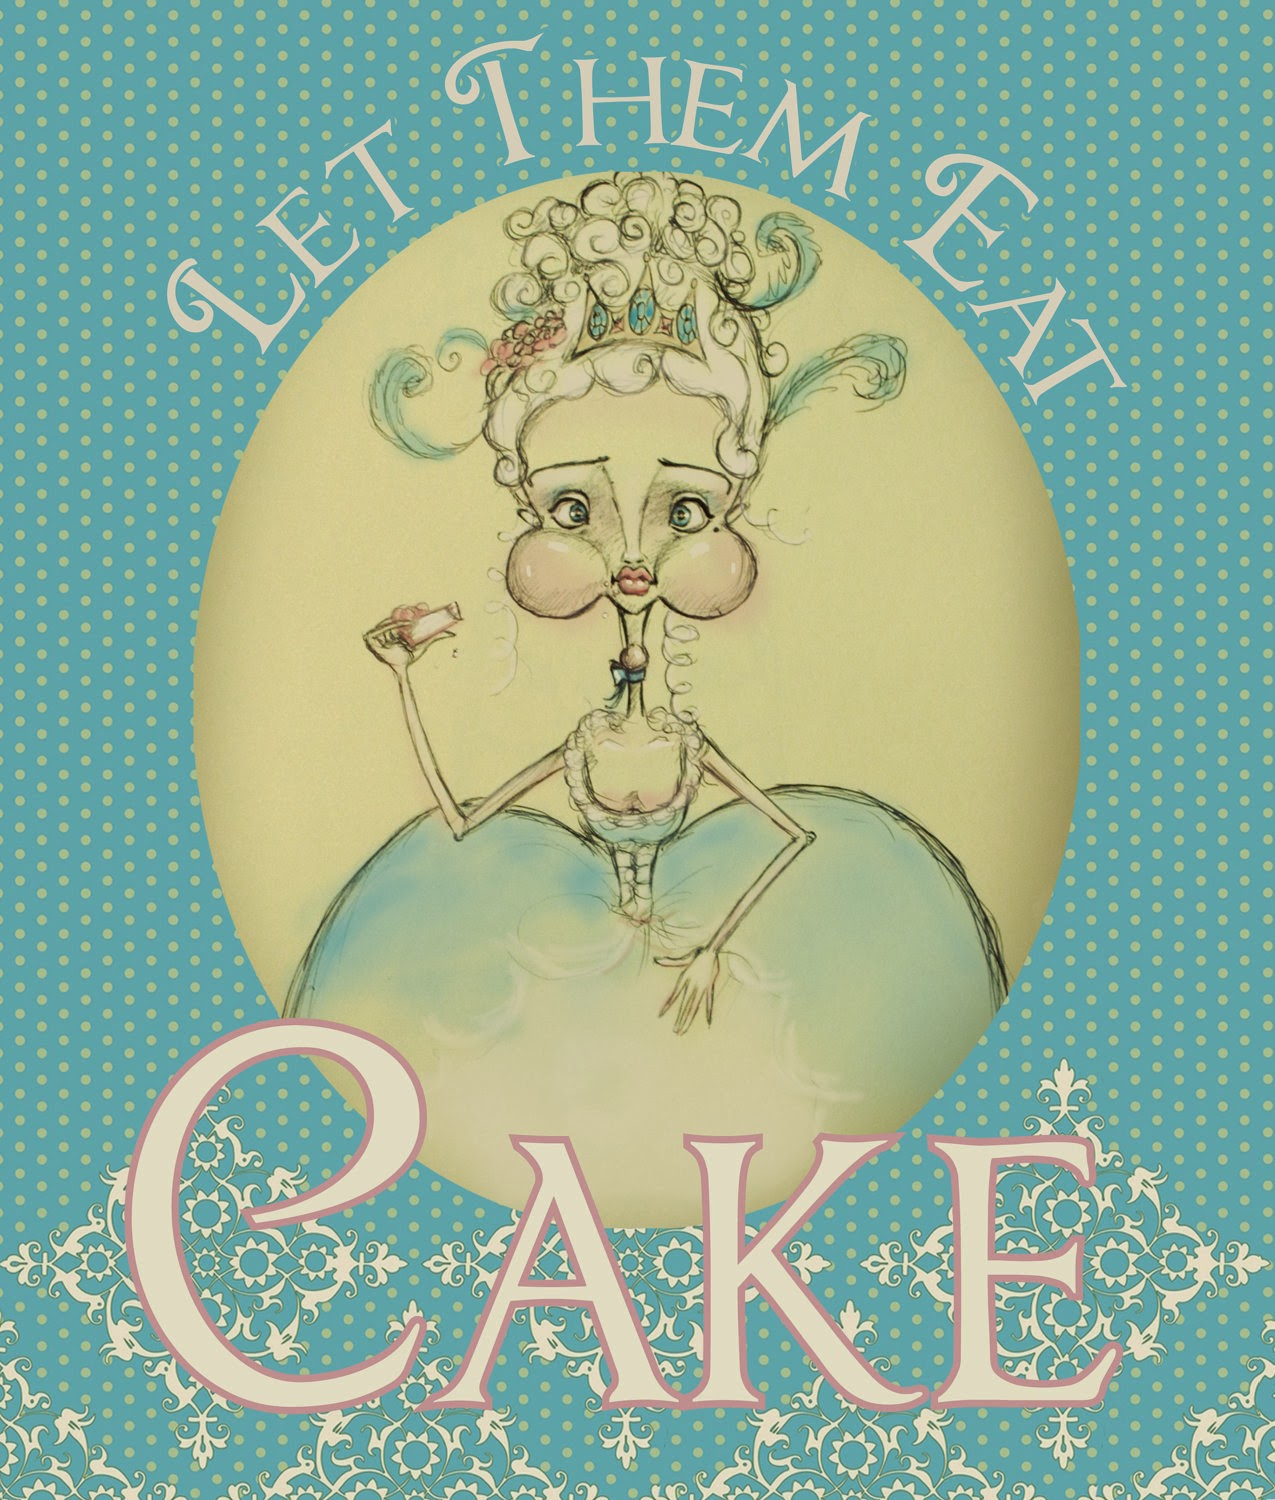 https://www.etsy.com/listing/85533684/marie-antoinette-let-them-eat-cake-art?ref=related-0&is_wholesale=0